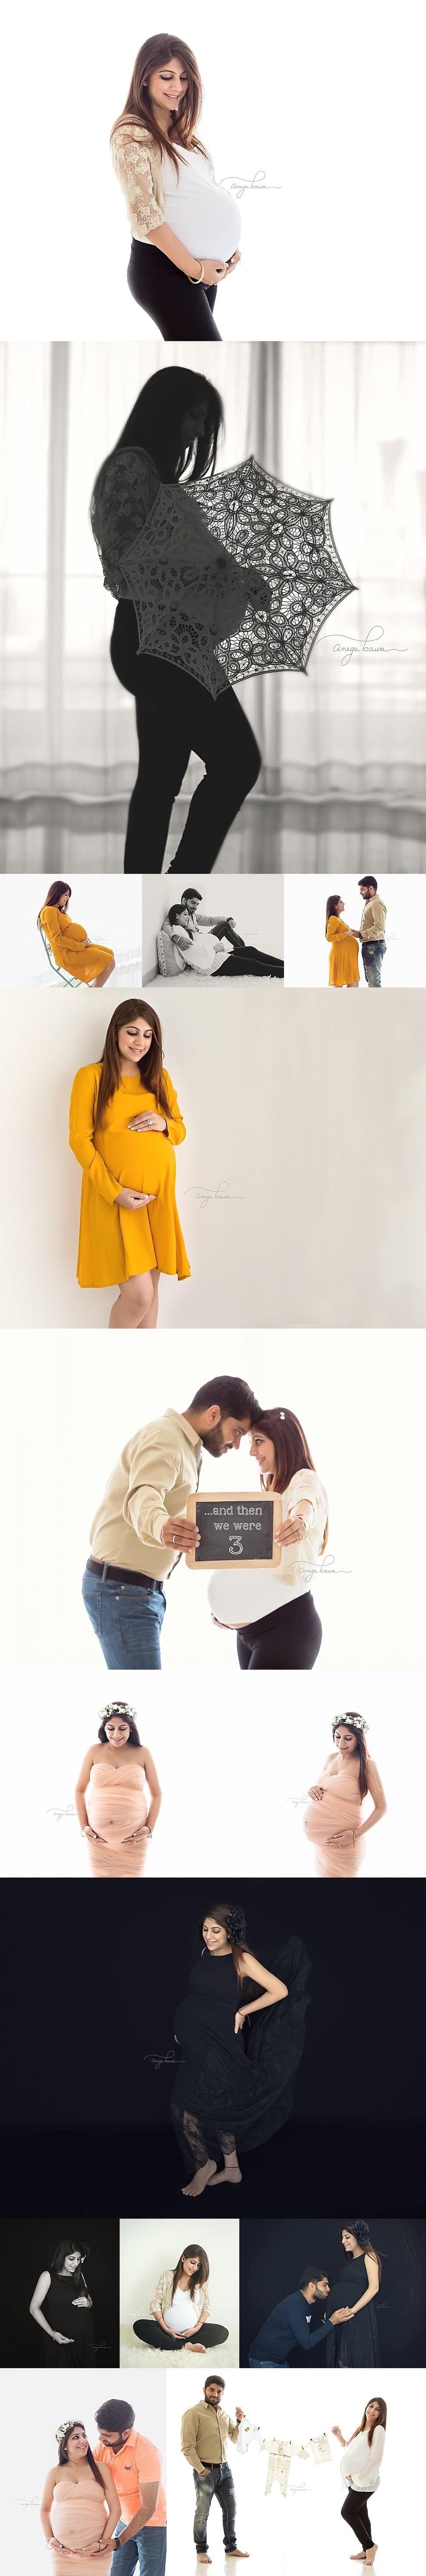 noida_pregnancy_photography_gurgaon_anega_bawa